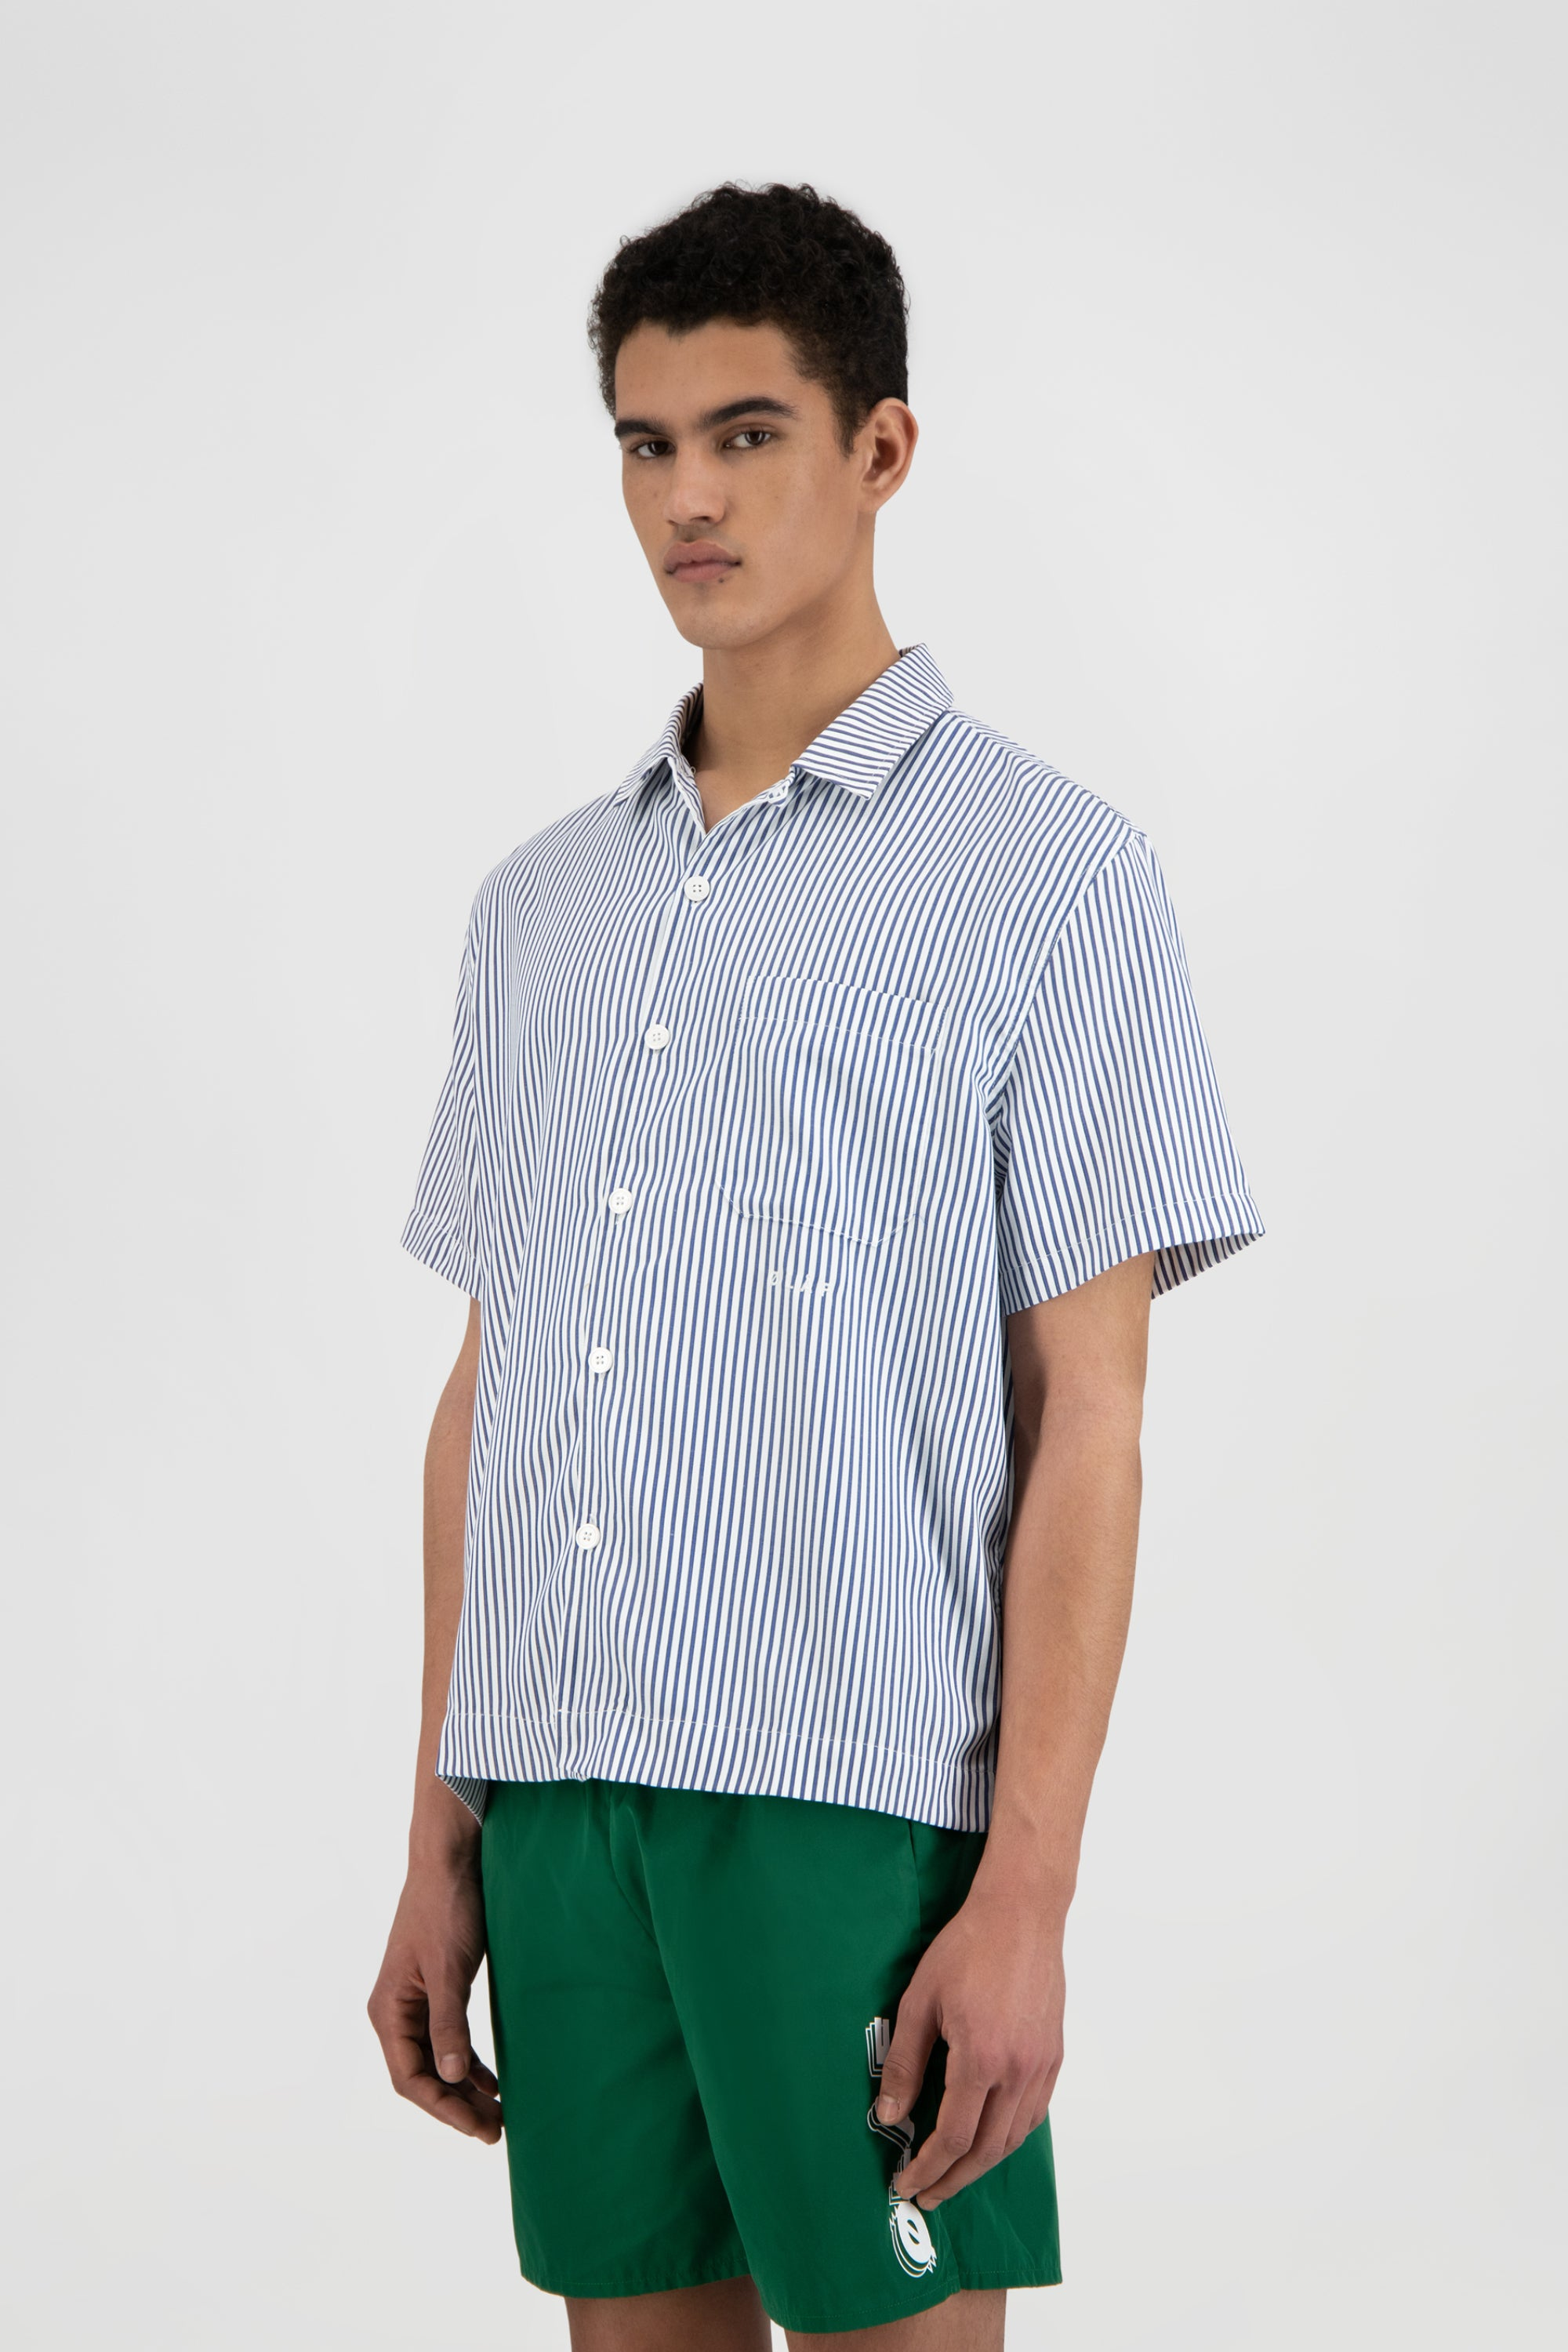 ØLÅF SS Stripe Shirt - Navy / White